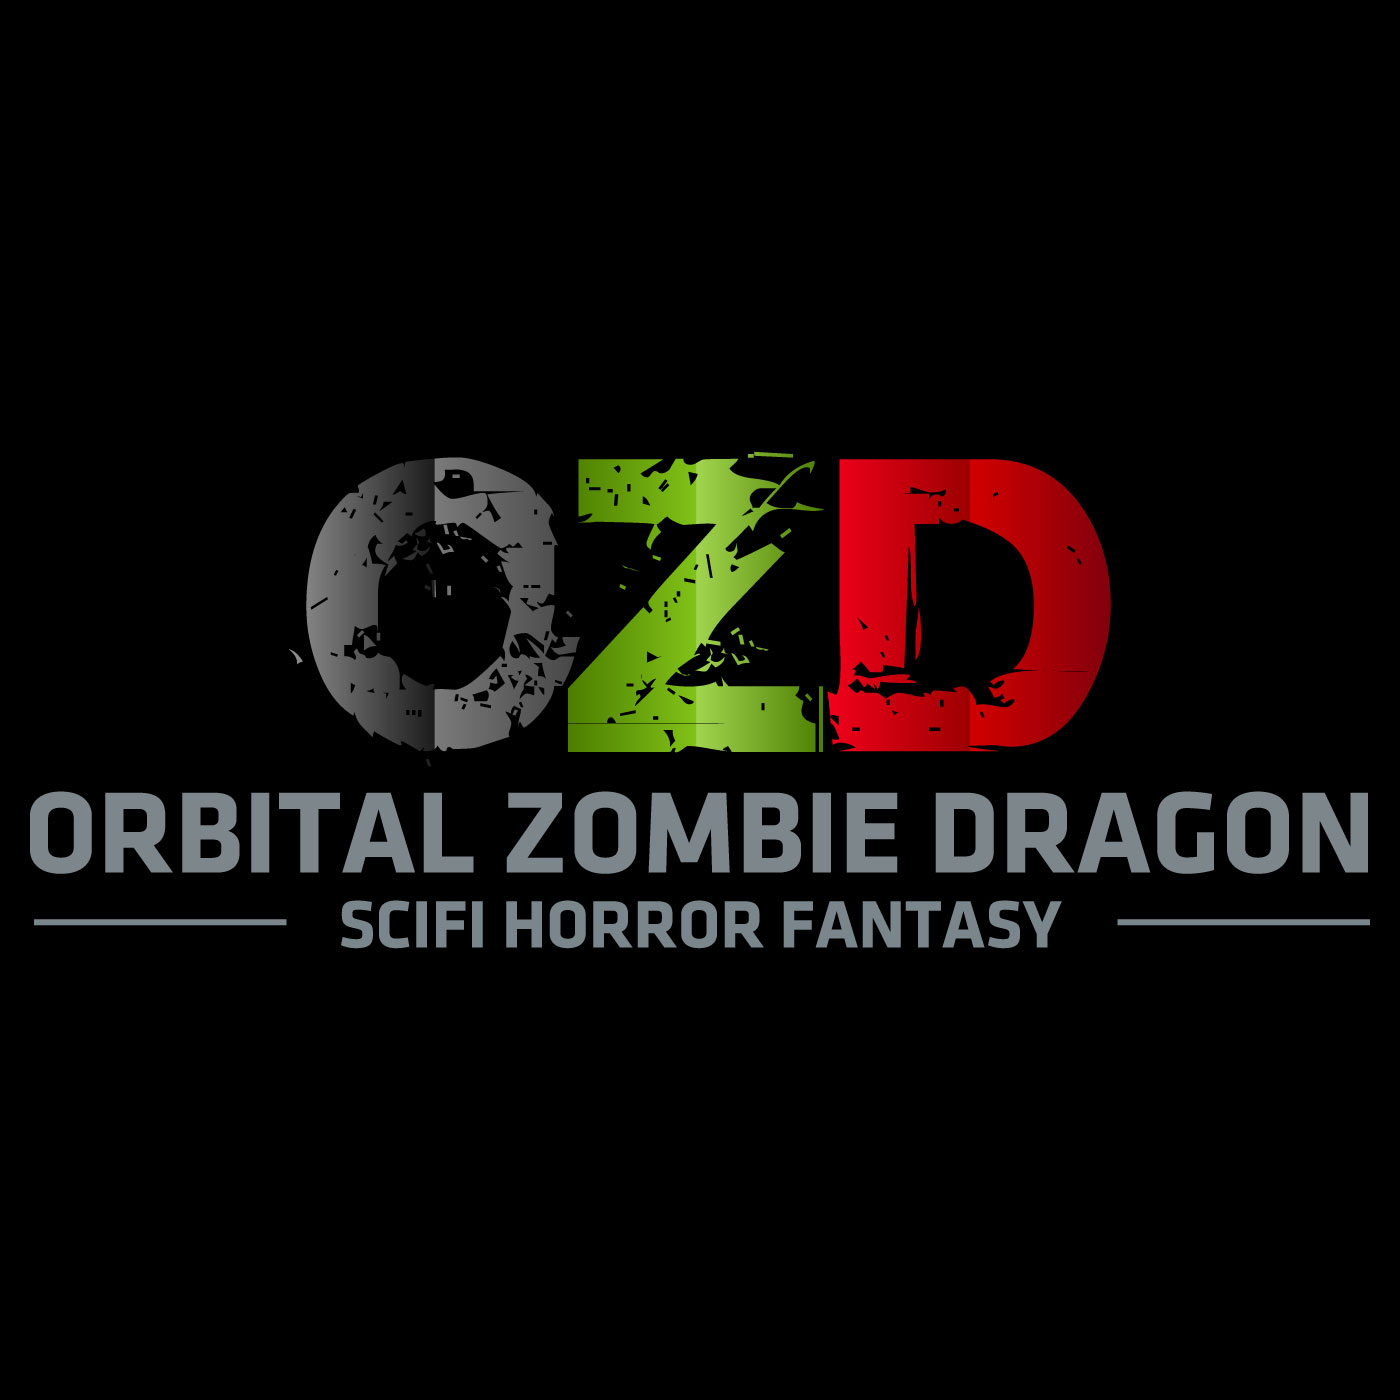 Orbital Zombie Dragon